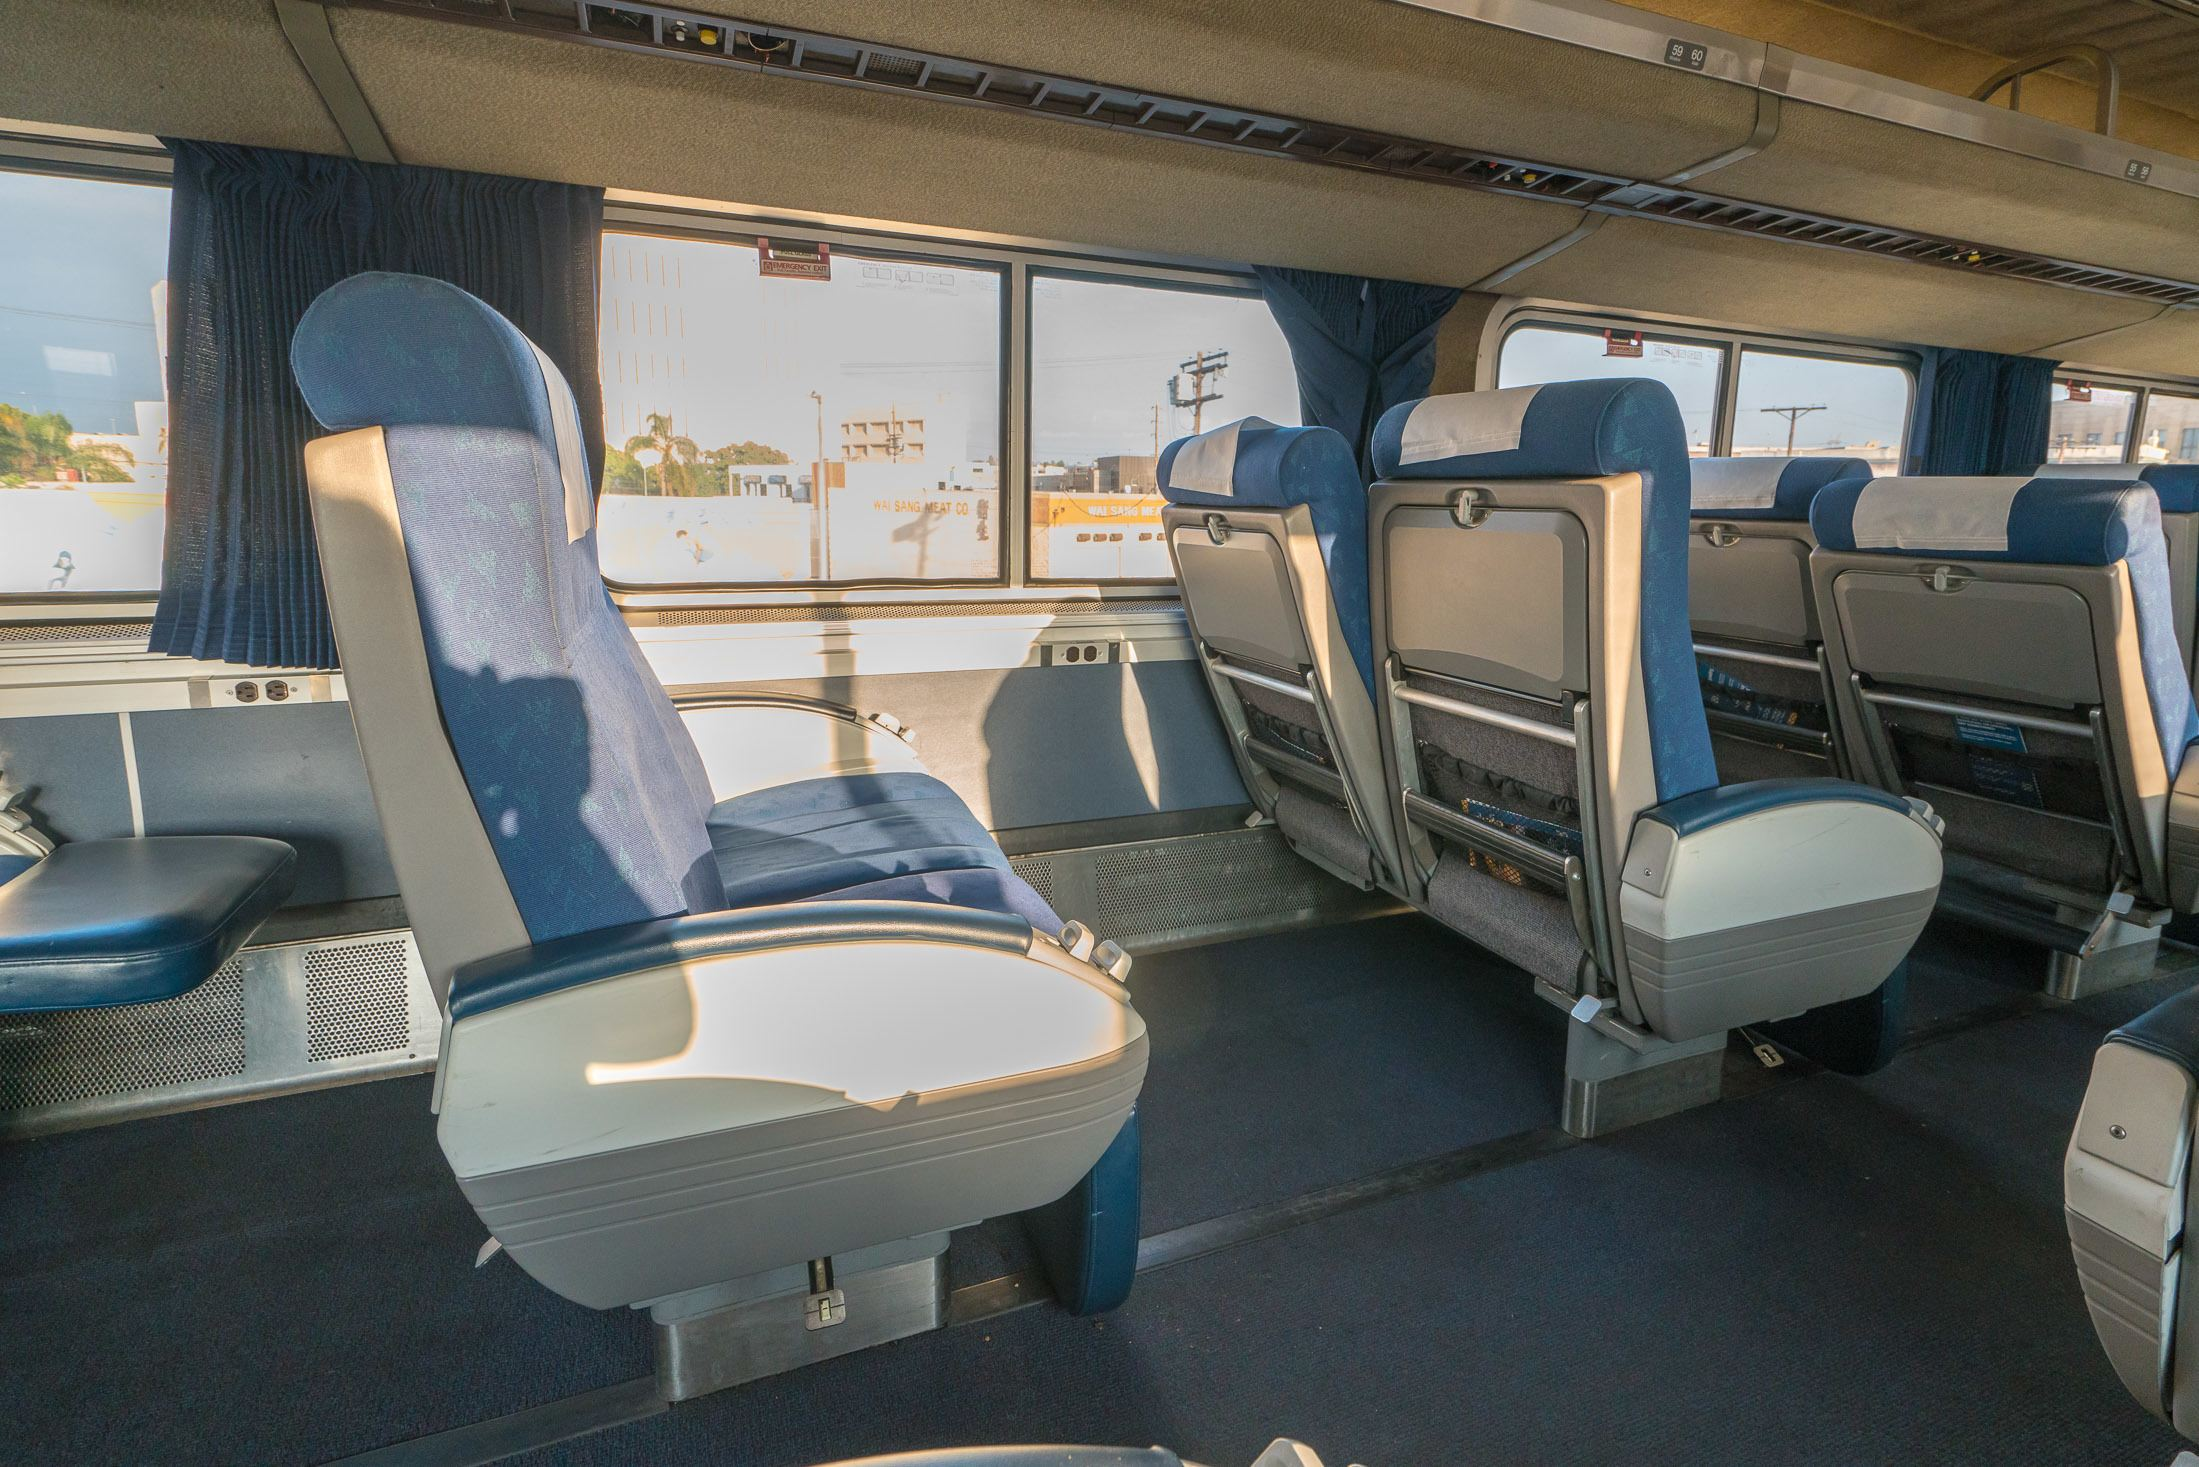 Seats in Amtrak business class on the Pacific Surfliner train.